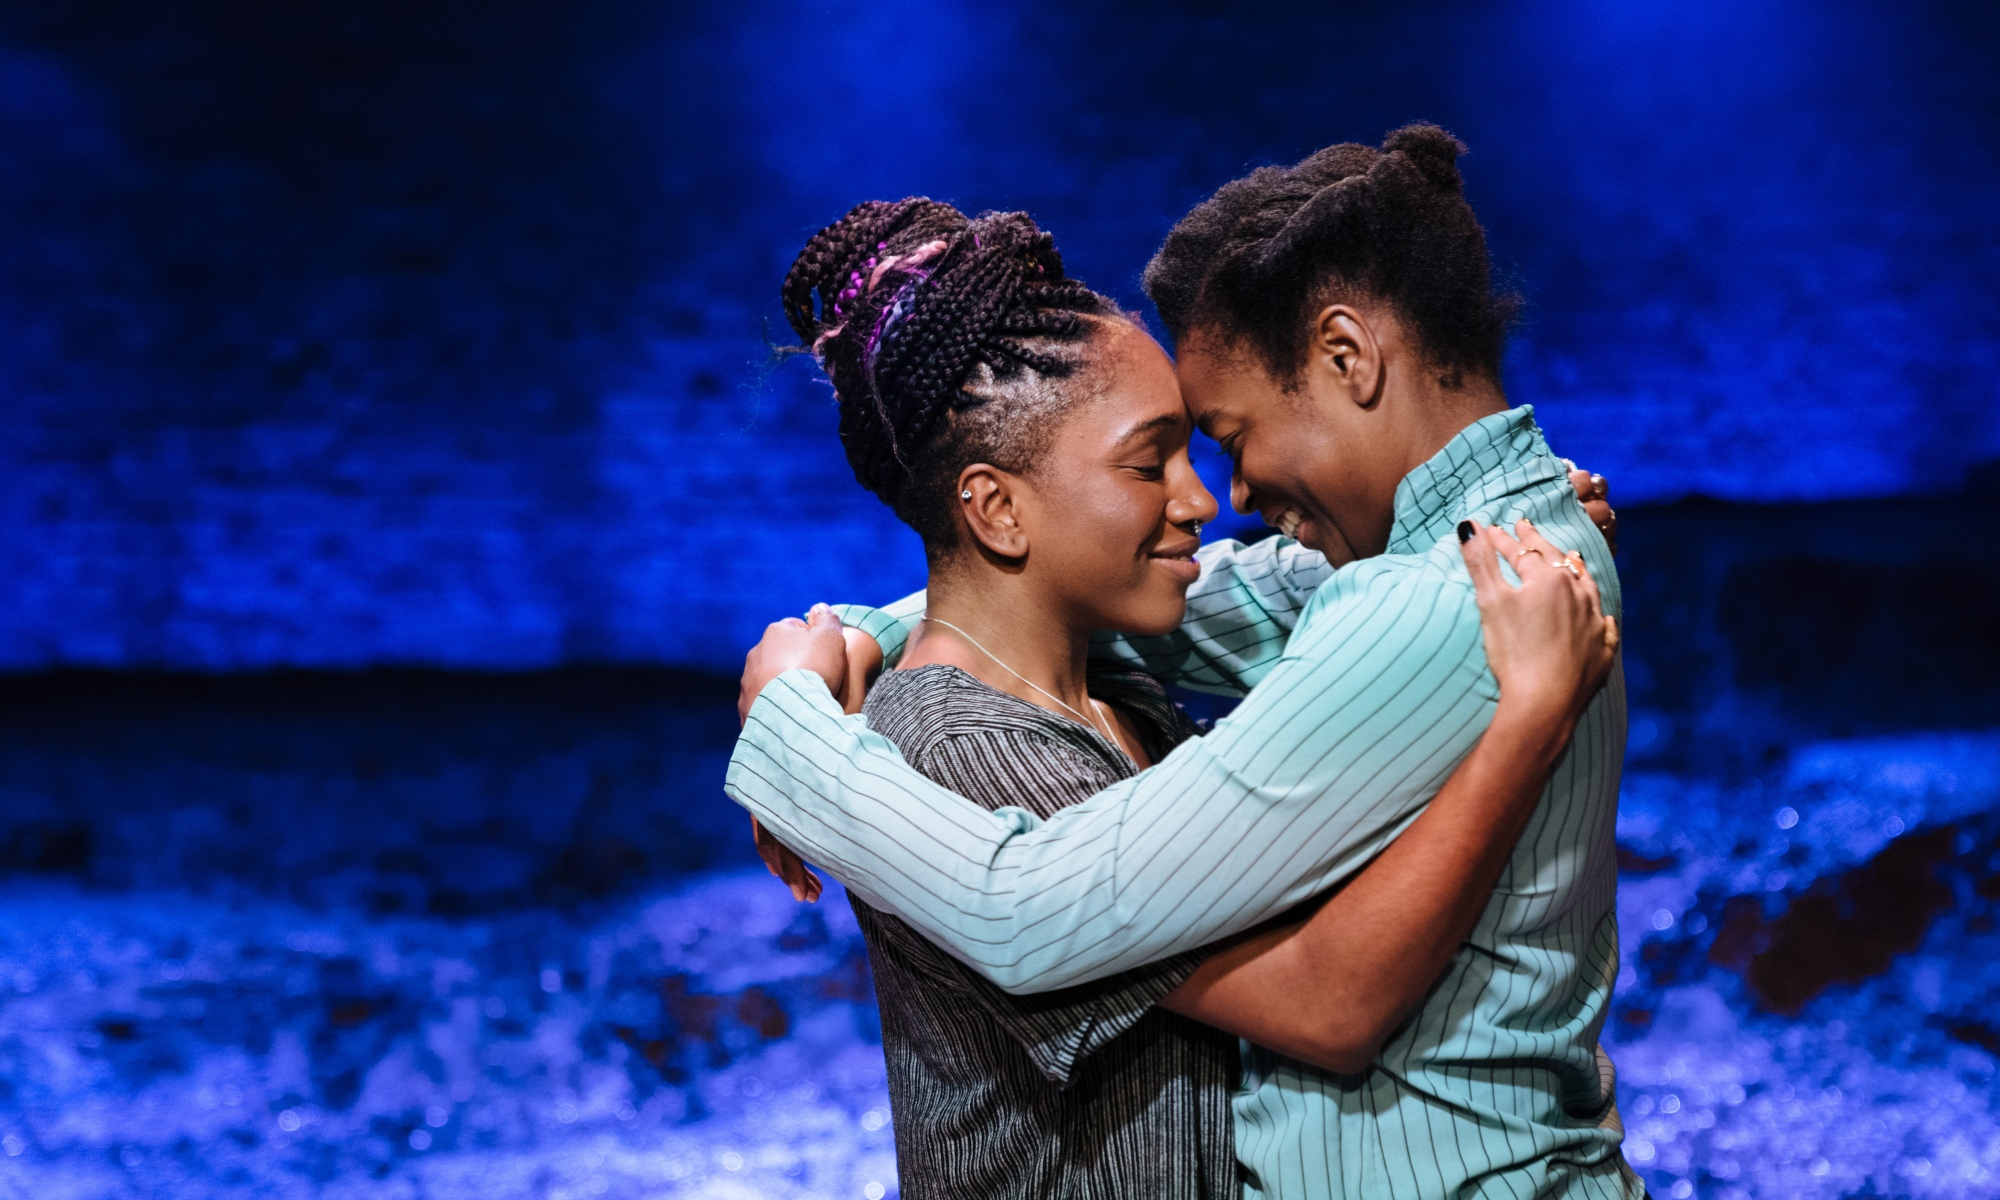 Two black women are holding each other close and smiling. The lighting in the background behind them is a dark blue. They are clearly in love.